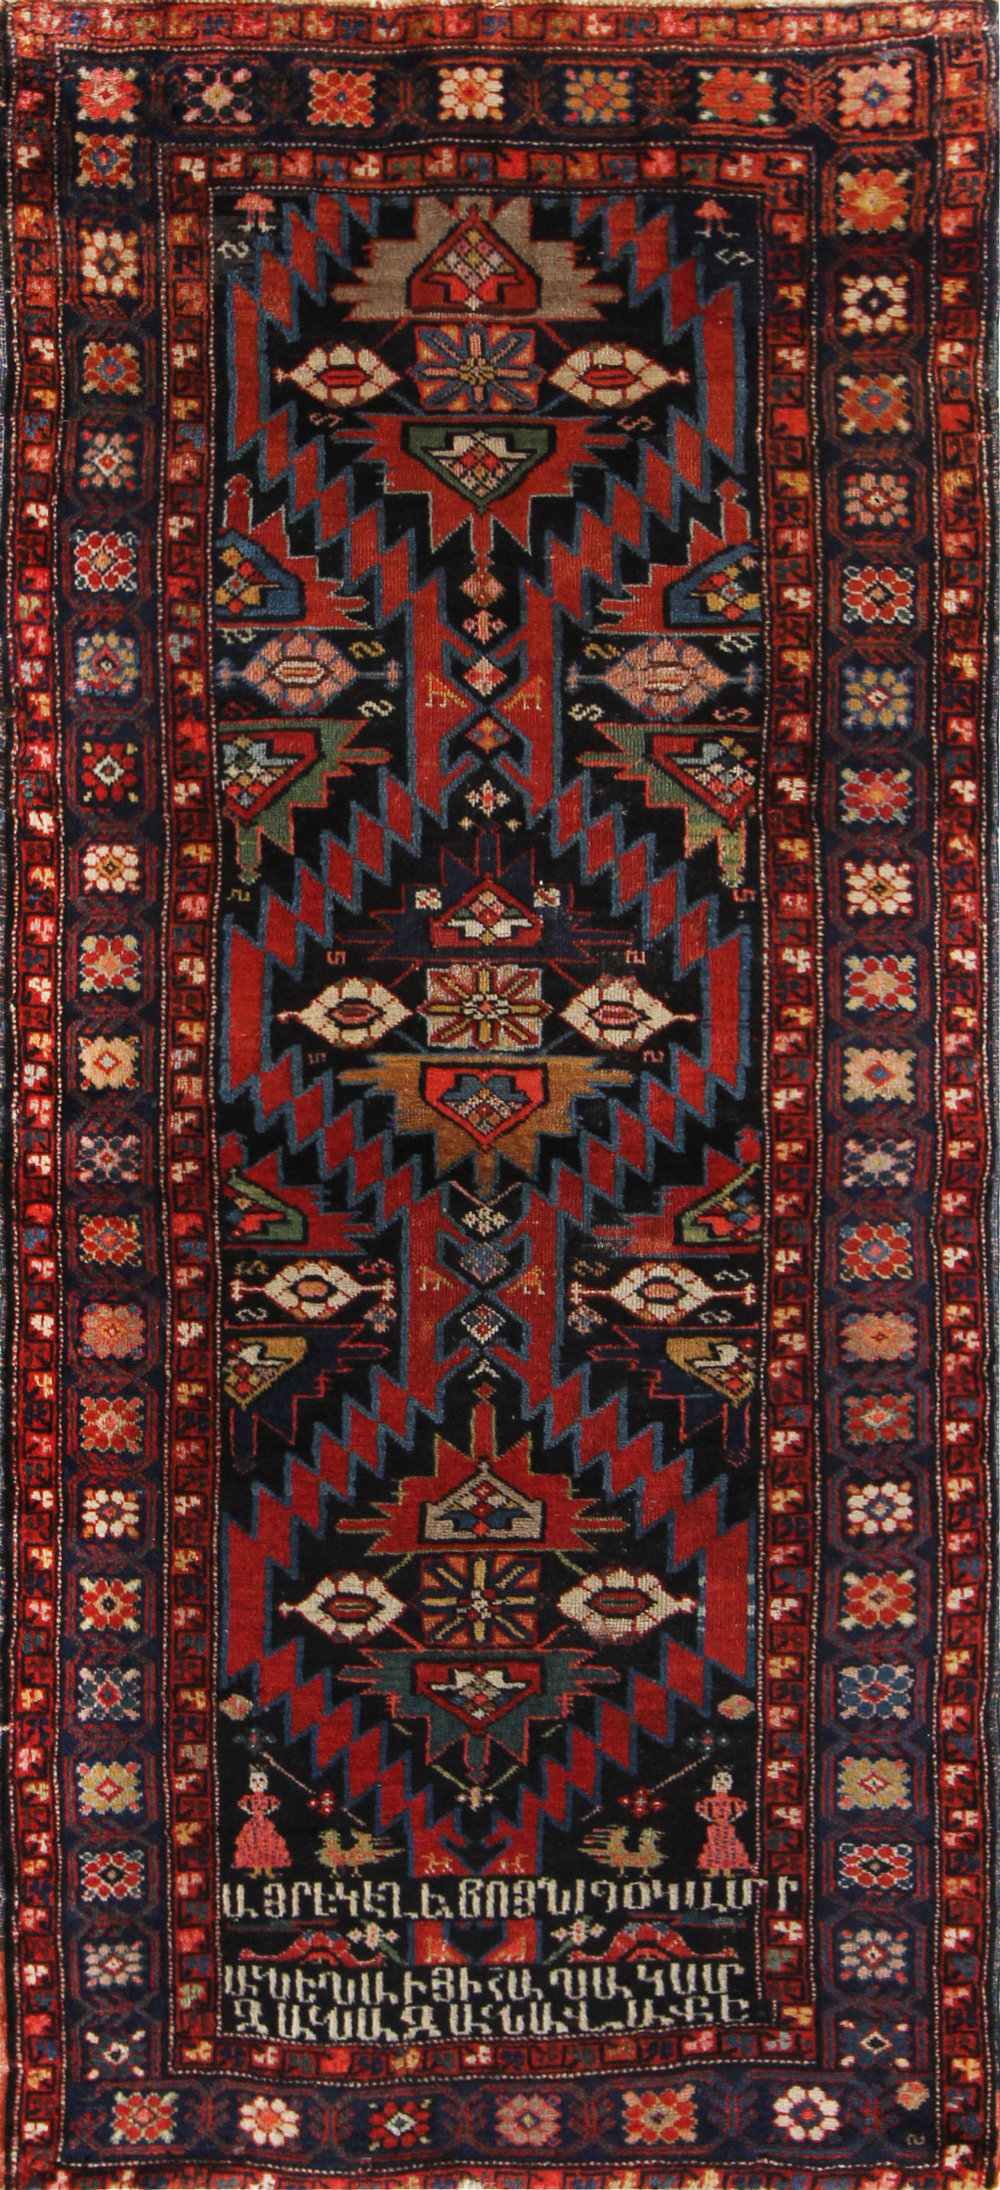 42 Armenian Sawtooth Karabagh, Inscribed dated 1904, 3'6''x7'6''